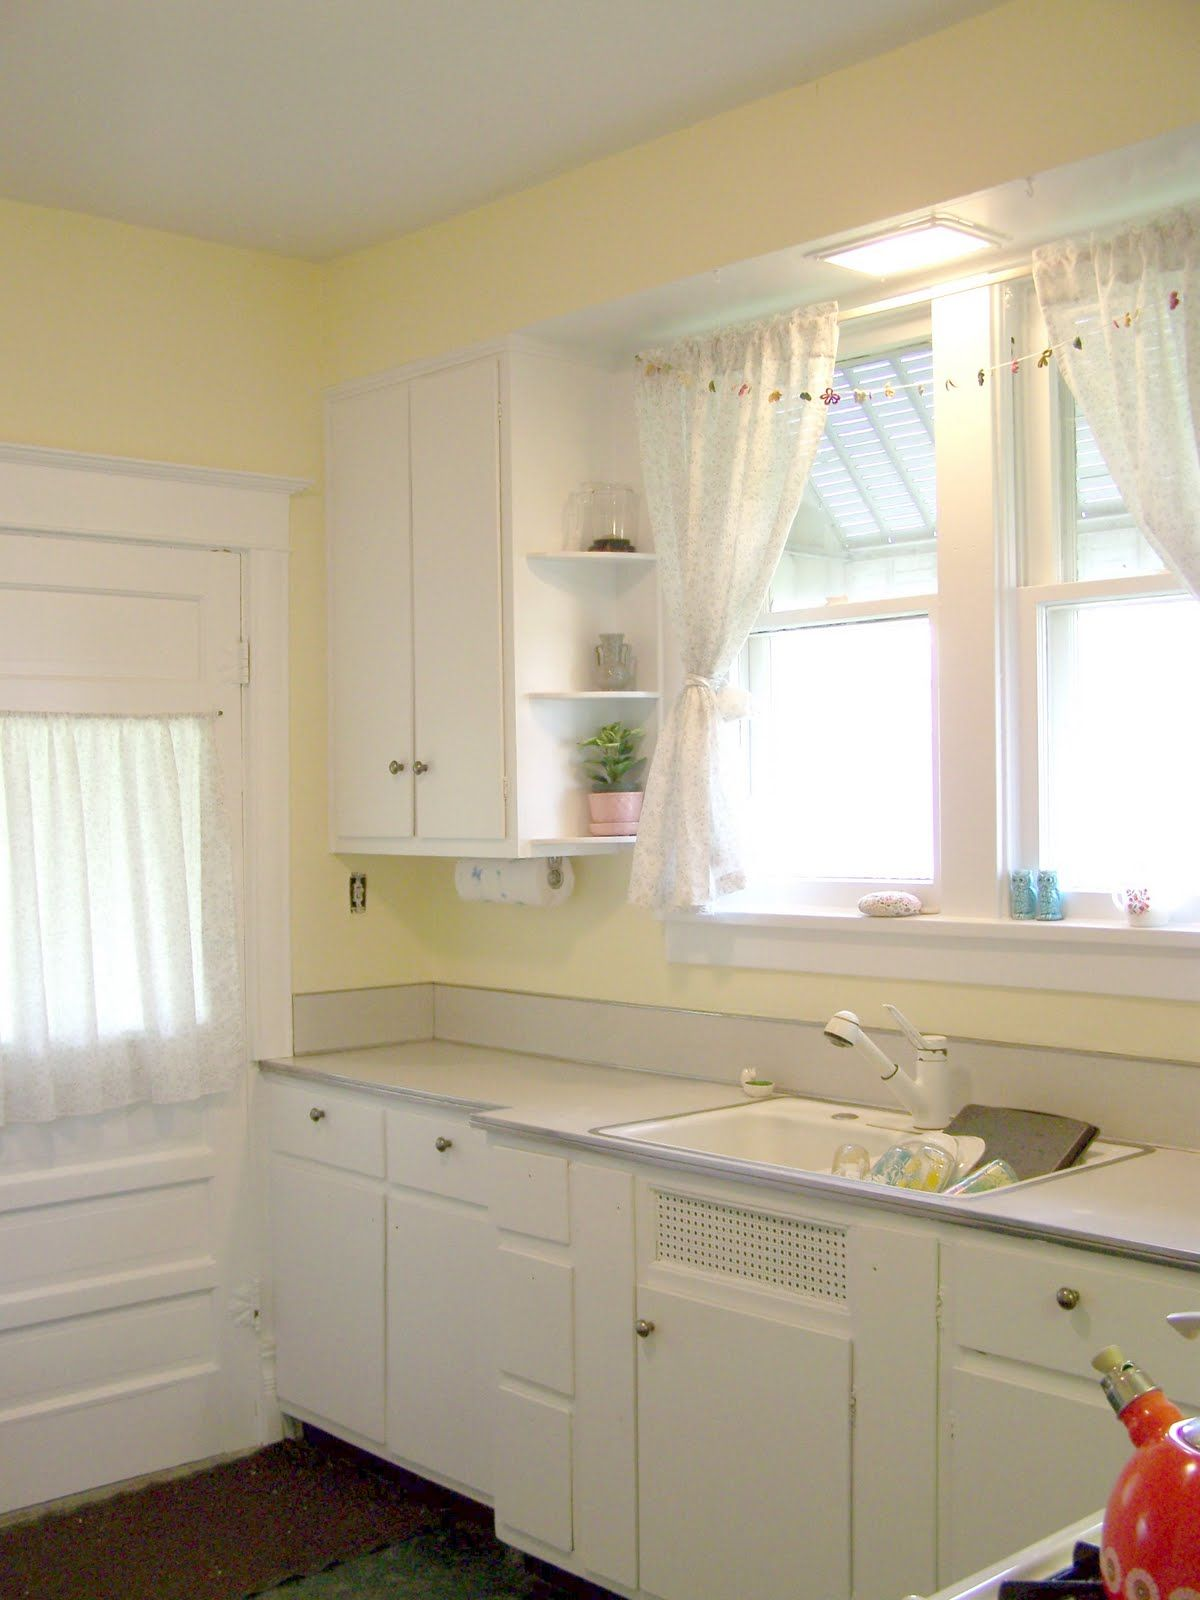 Kitchen Curtains For Yellow Walls White And Yellow Kitchen For Our House At The Lake